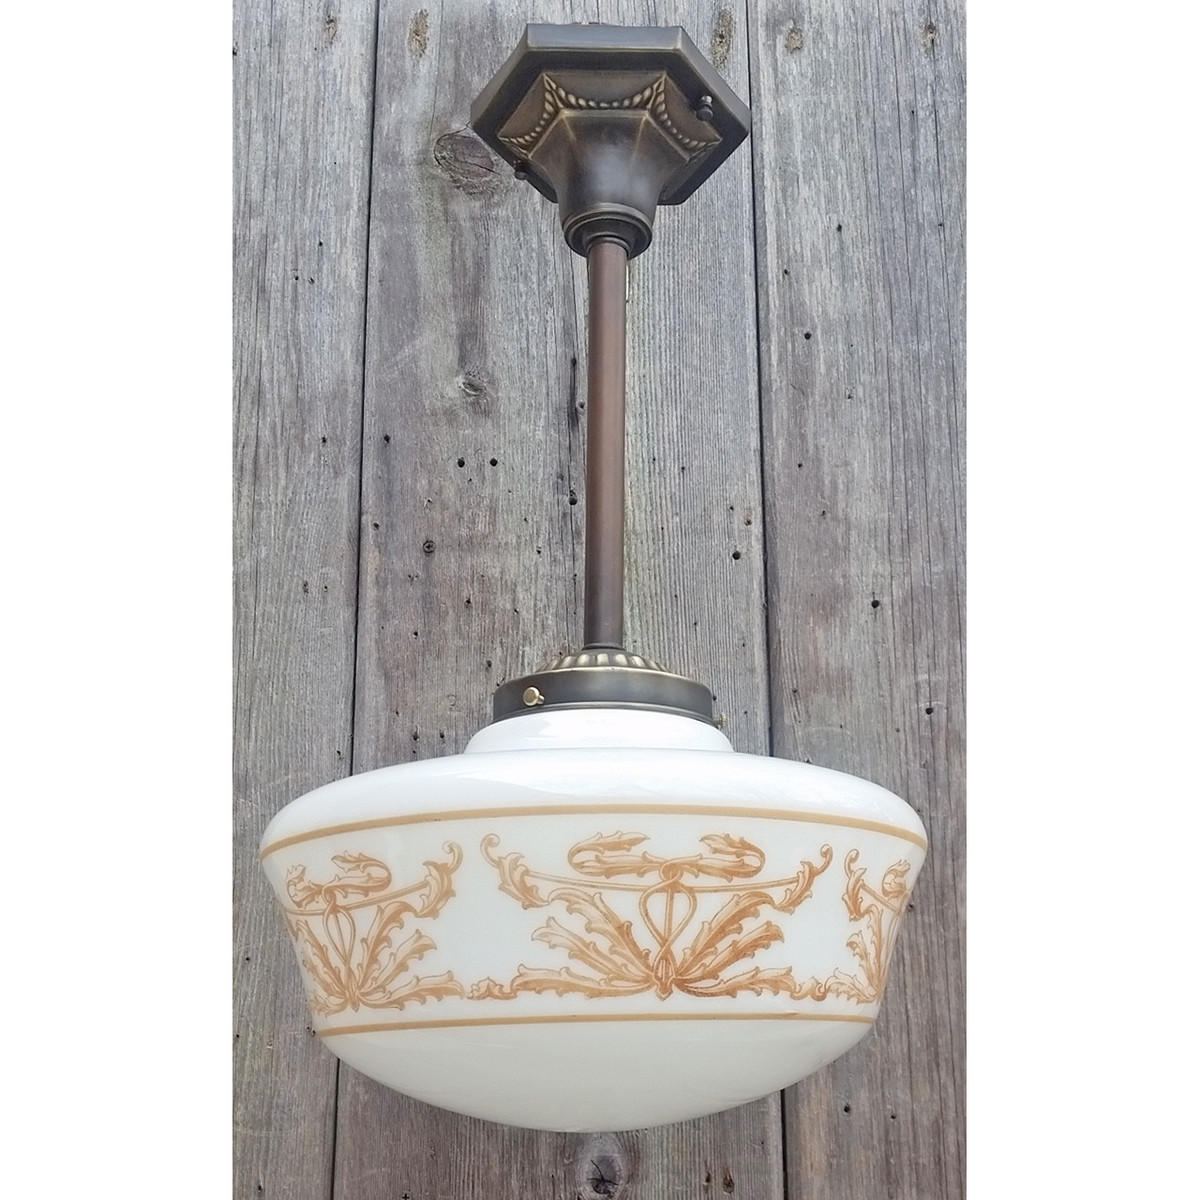 L20003 - Antique Beaux Arts Schoolhouse Fixture